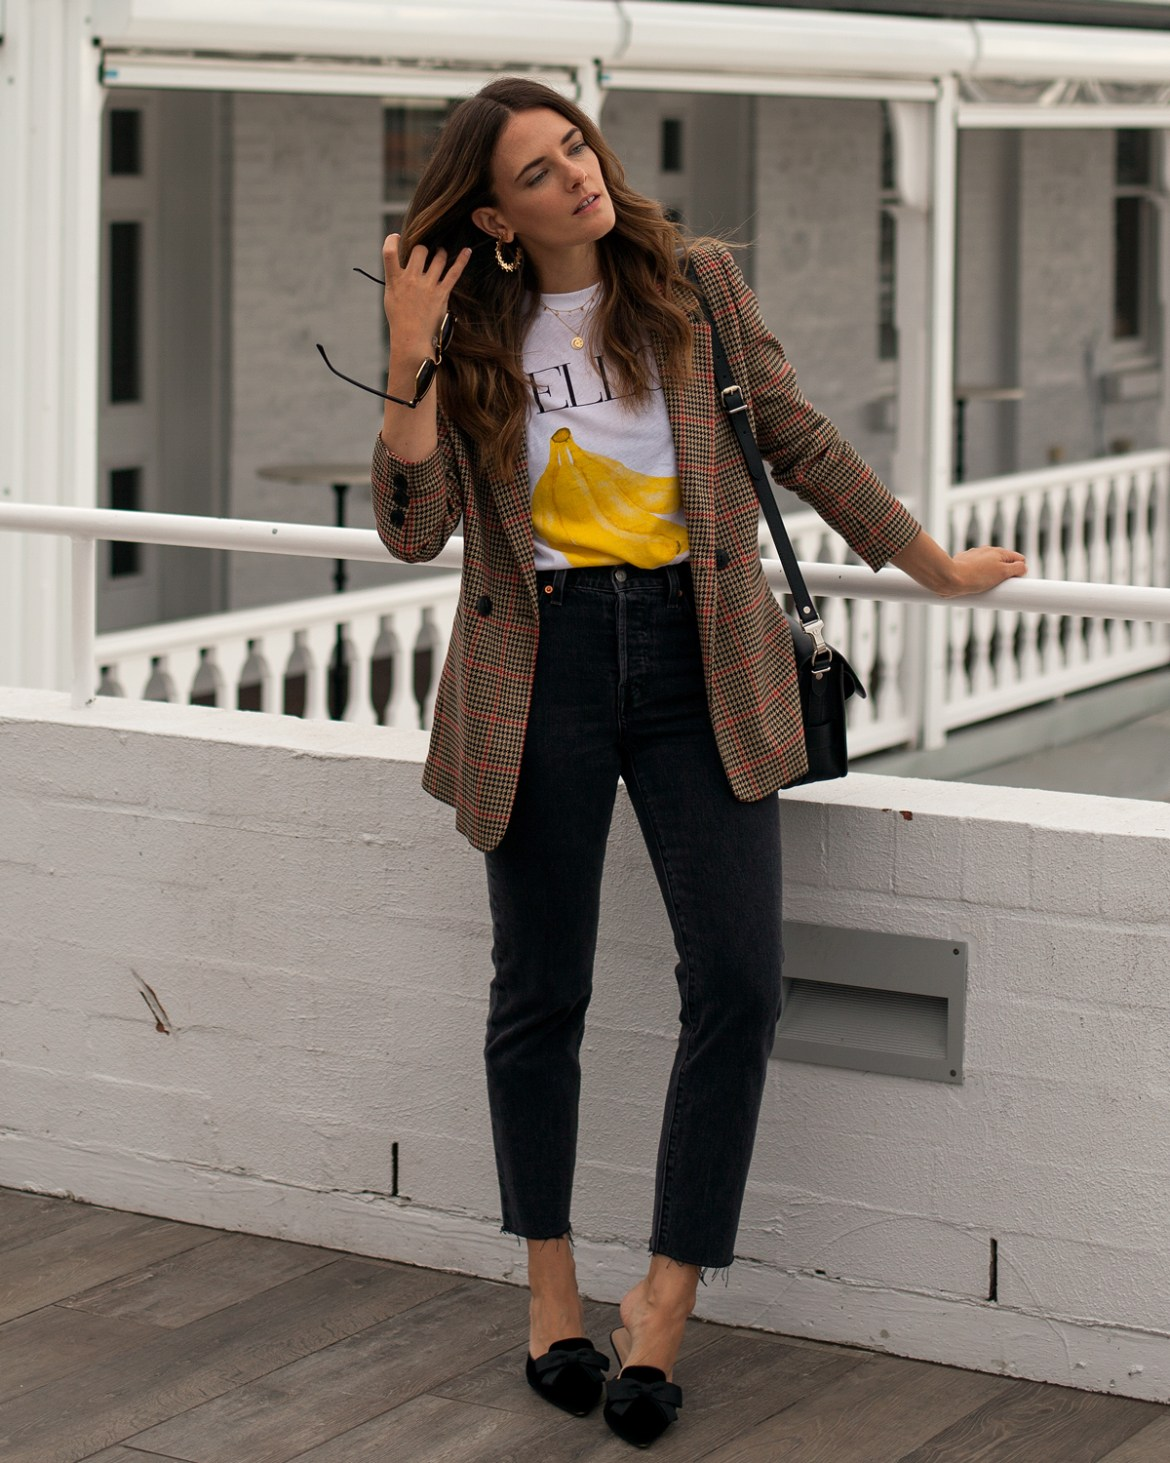 Inspiring Wit fashion blogger Jenelle wearing Anine Bing brown check plaid blazer, Ganni t-shirt, Levi's jeans, velvet bow kitten heels